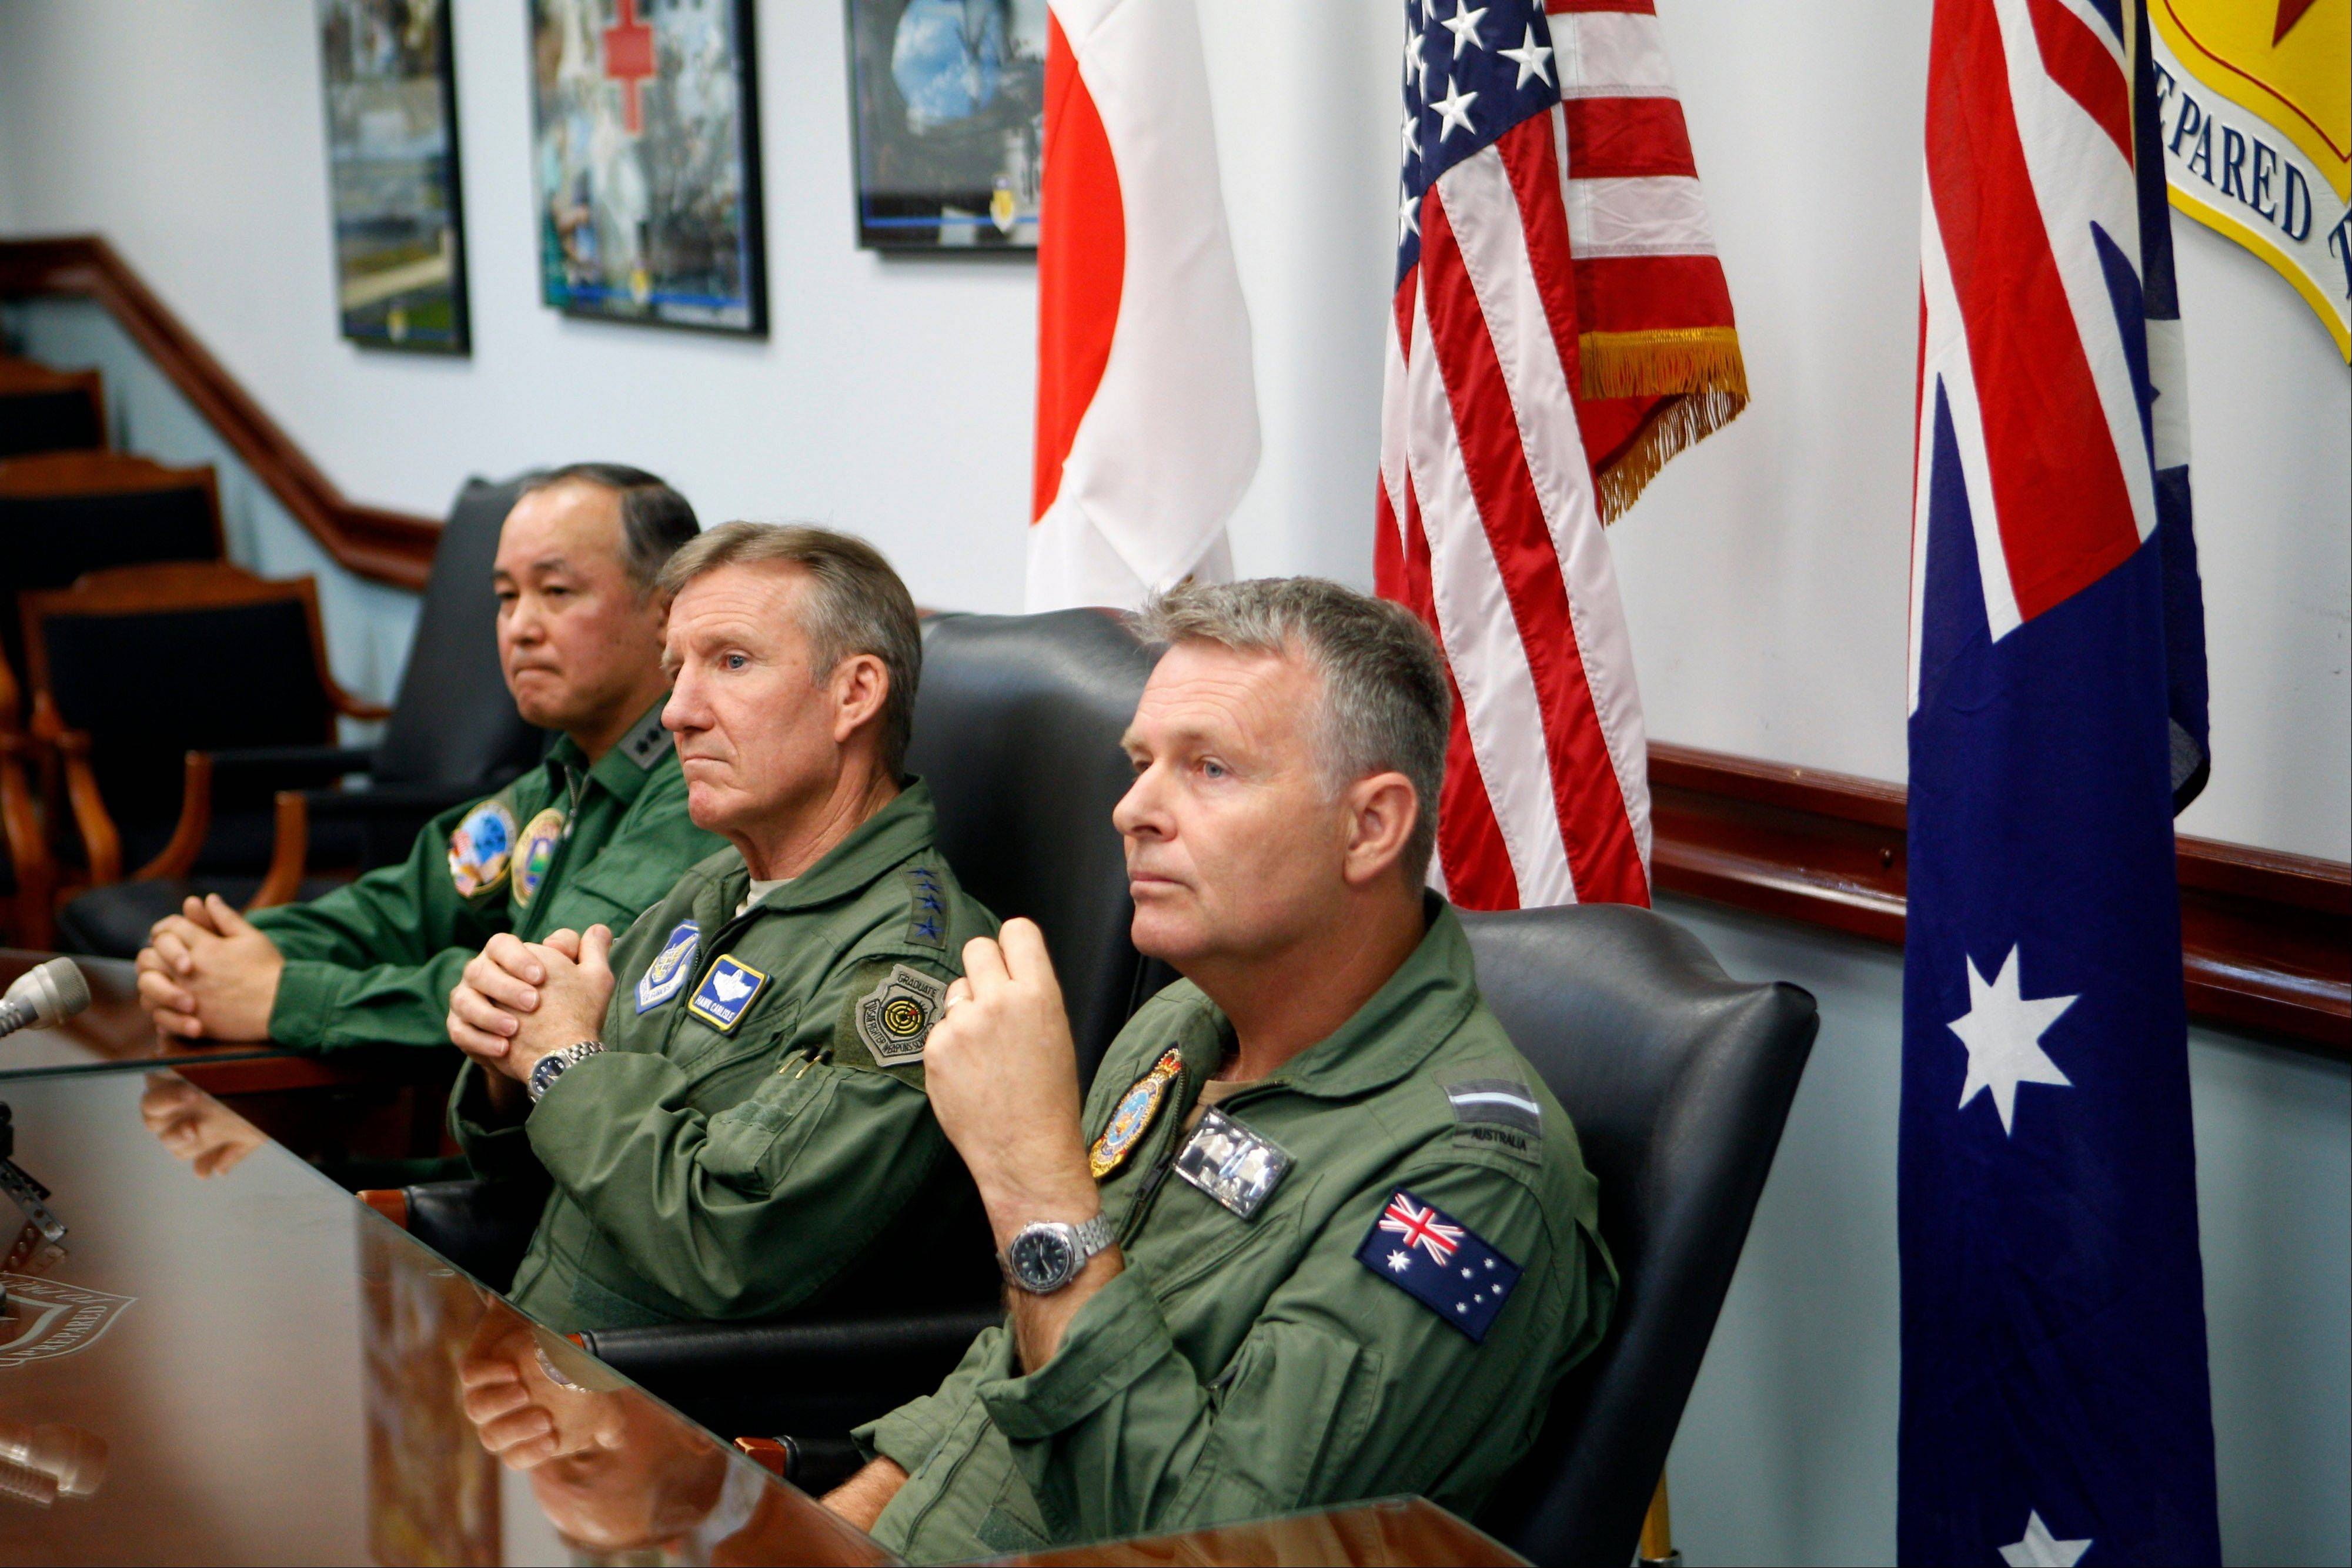 Associated PressJapanese Lt. Gen. Masayuki Hironaka, U.S. Pacific Air Forces commander Gen. Herbert Carlisle and Royal Australian Air Force Air Commodore Anthony Grady speak to the media at Andersen Air Force Base on the island of Guam to kick off the beginning of the Cope North military exercises.